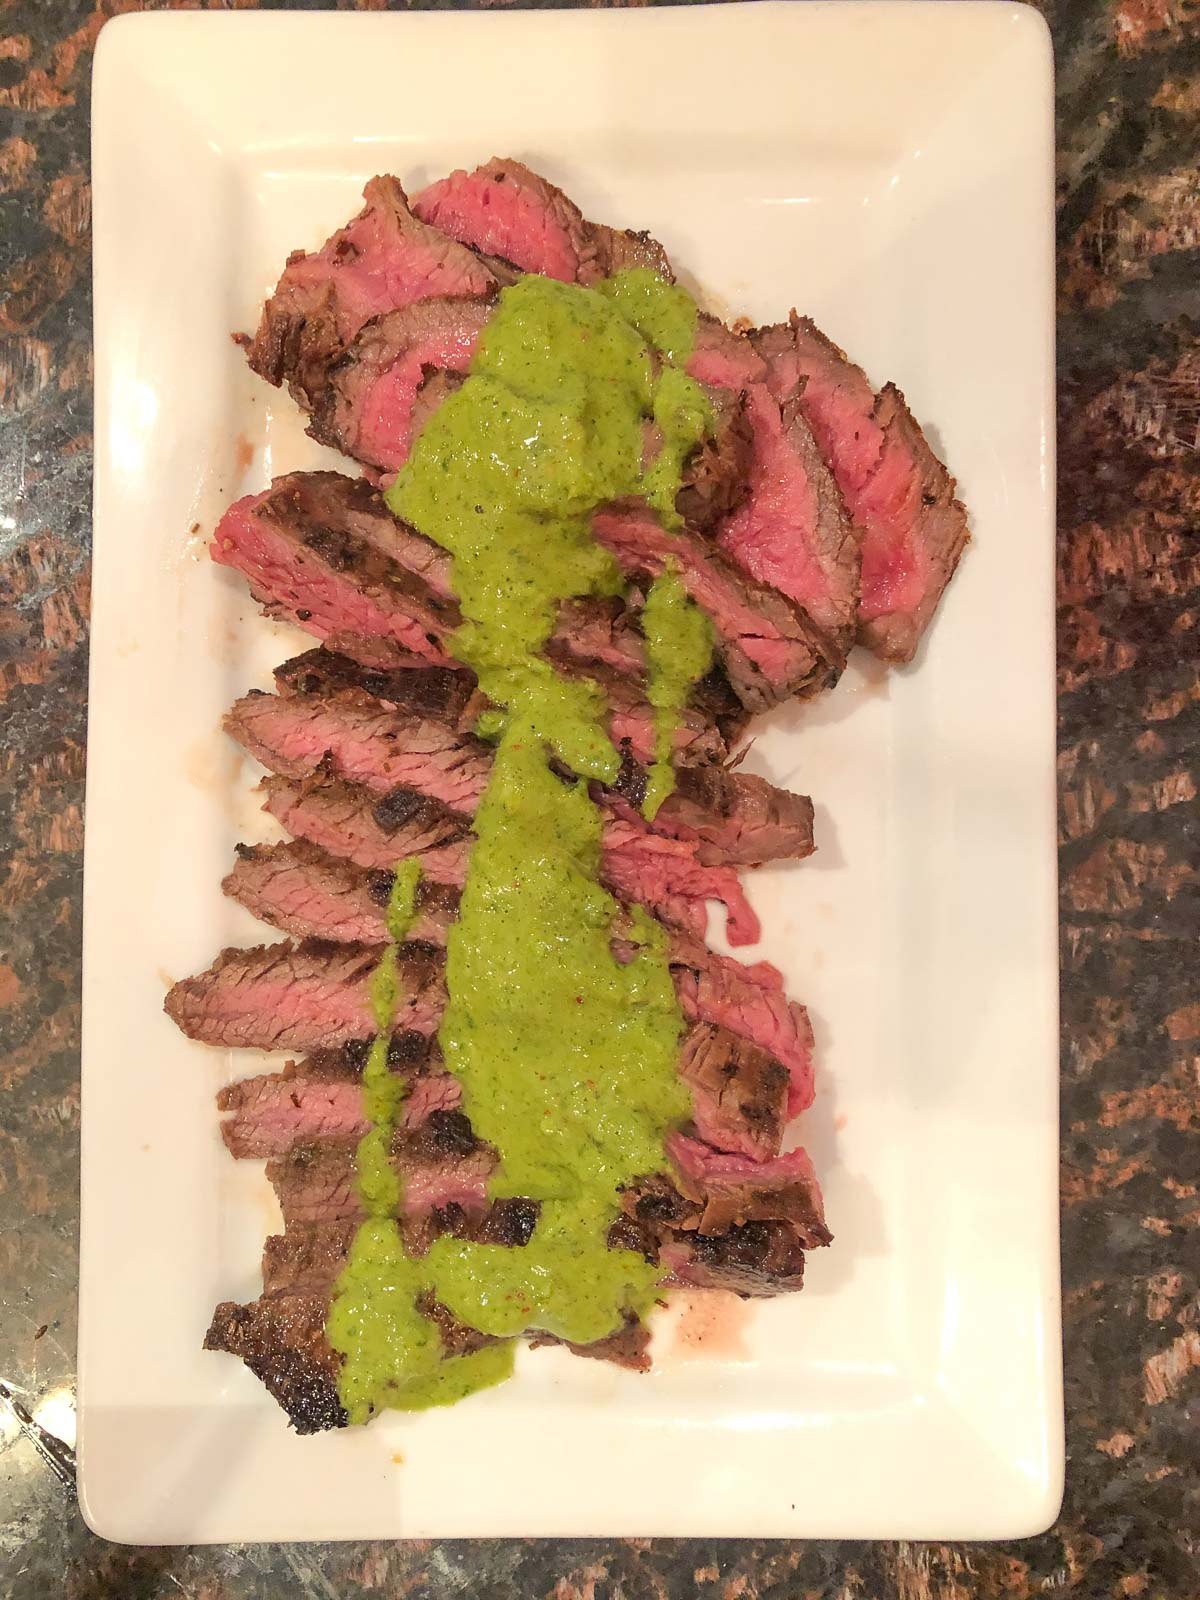 sliced medium rare flank steak topped with chimichurri sauce